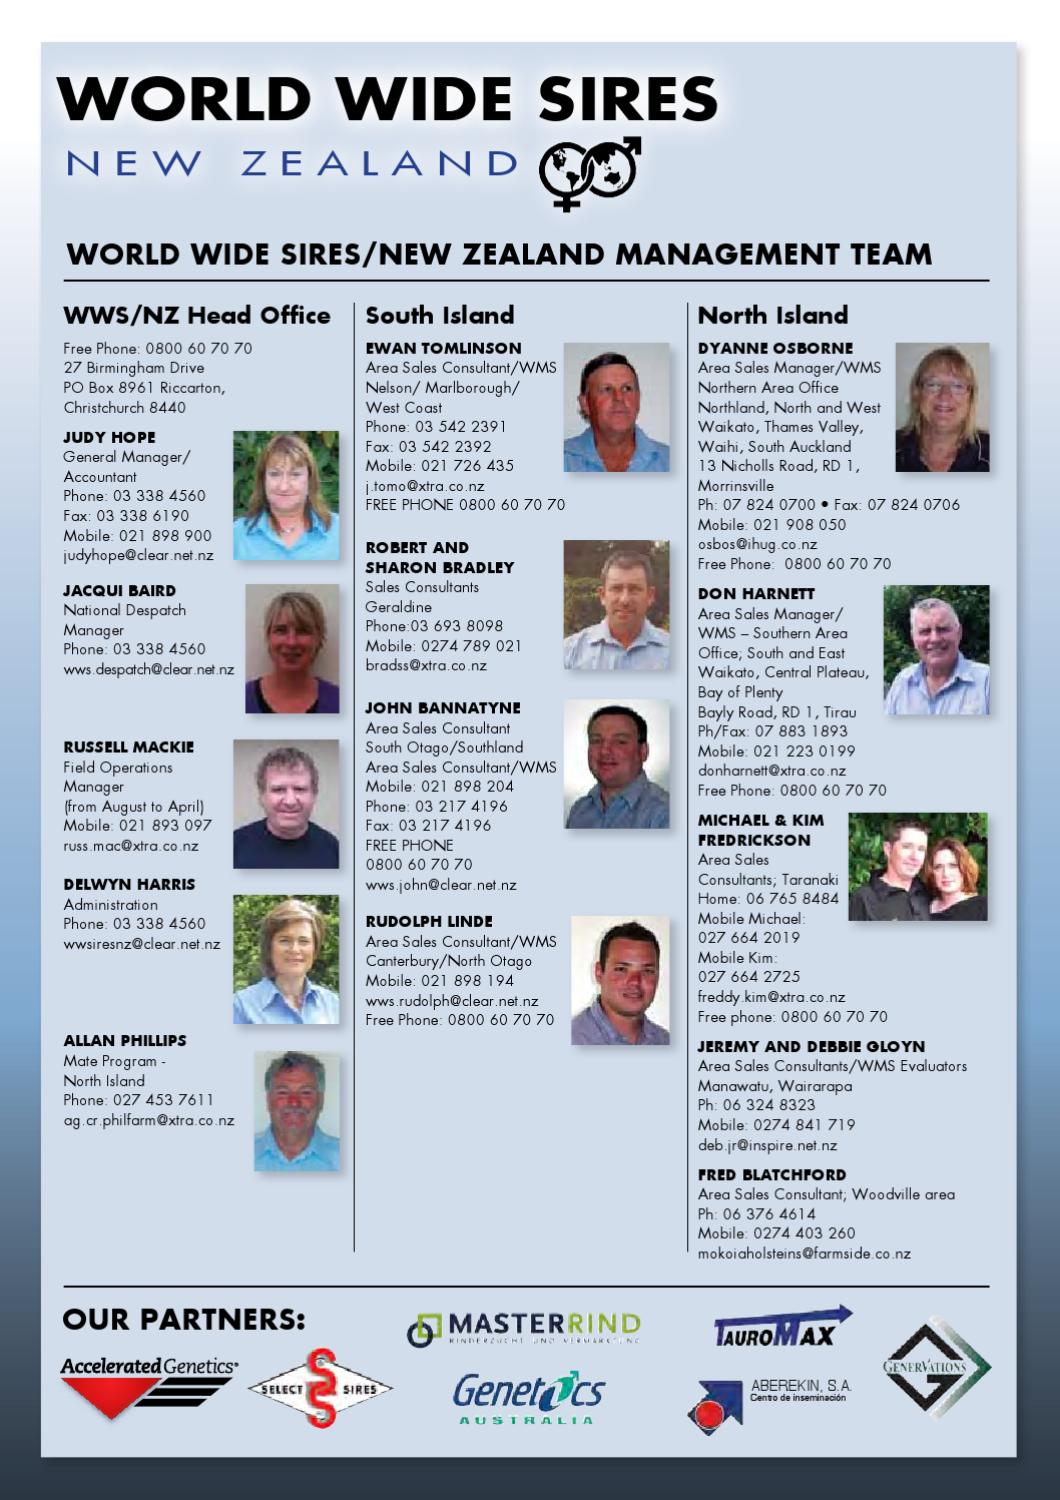 2012 World Wide Sires New Zealand Catalog by World Wide Sires, LTD